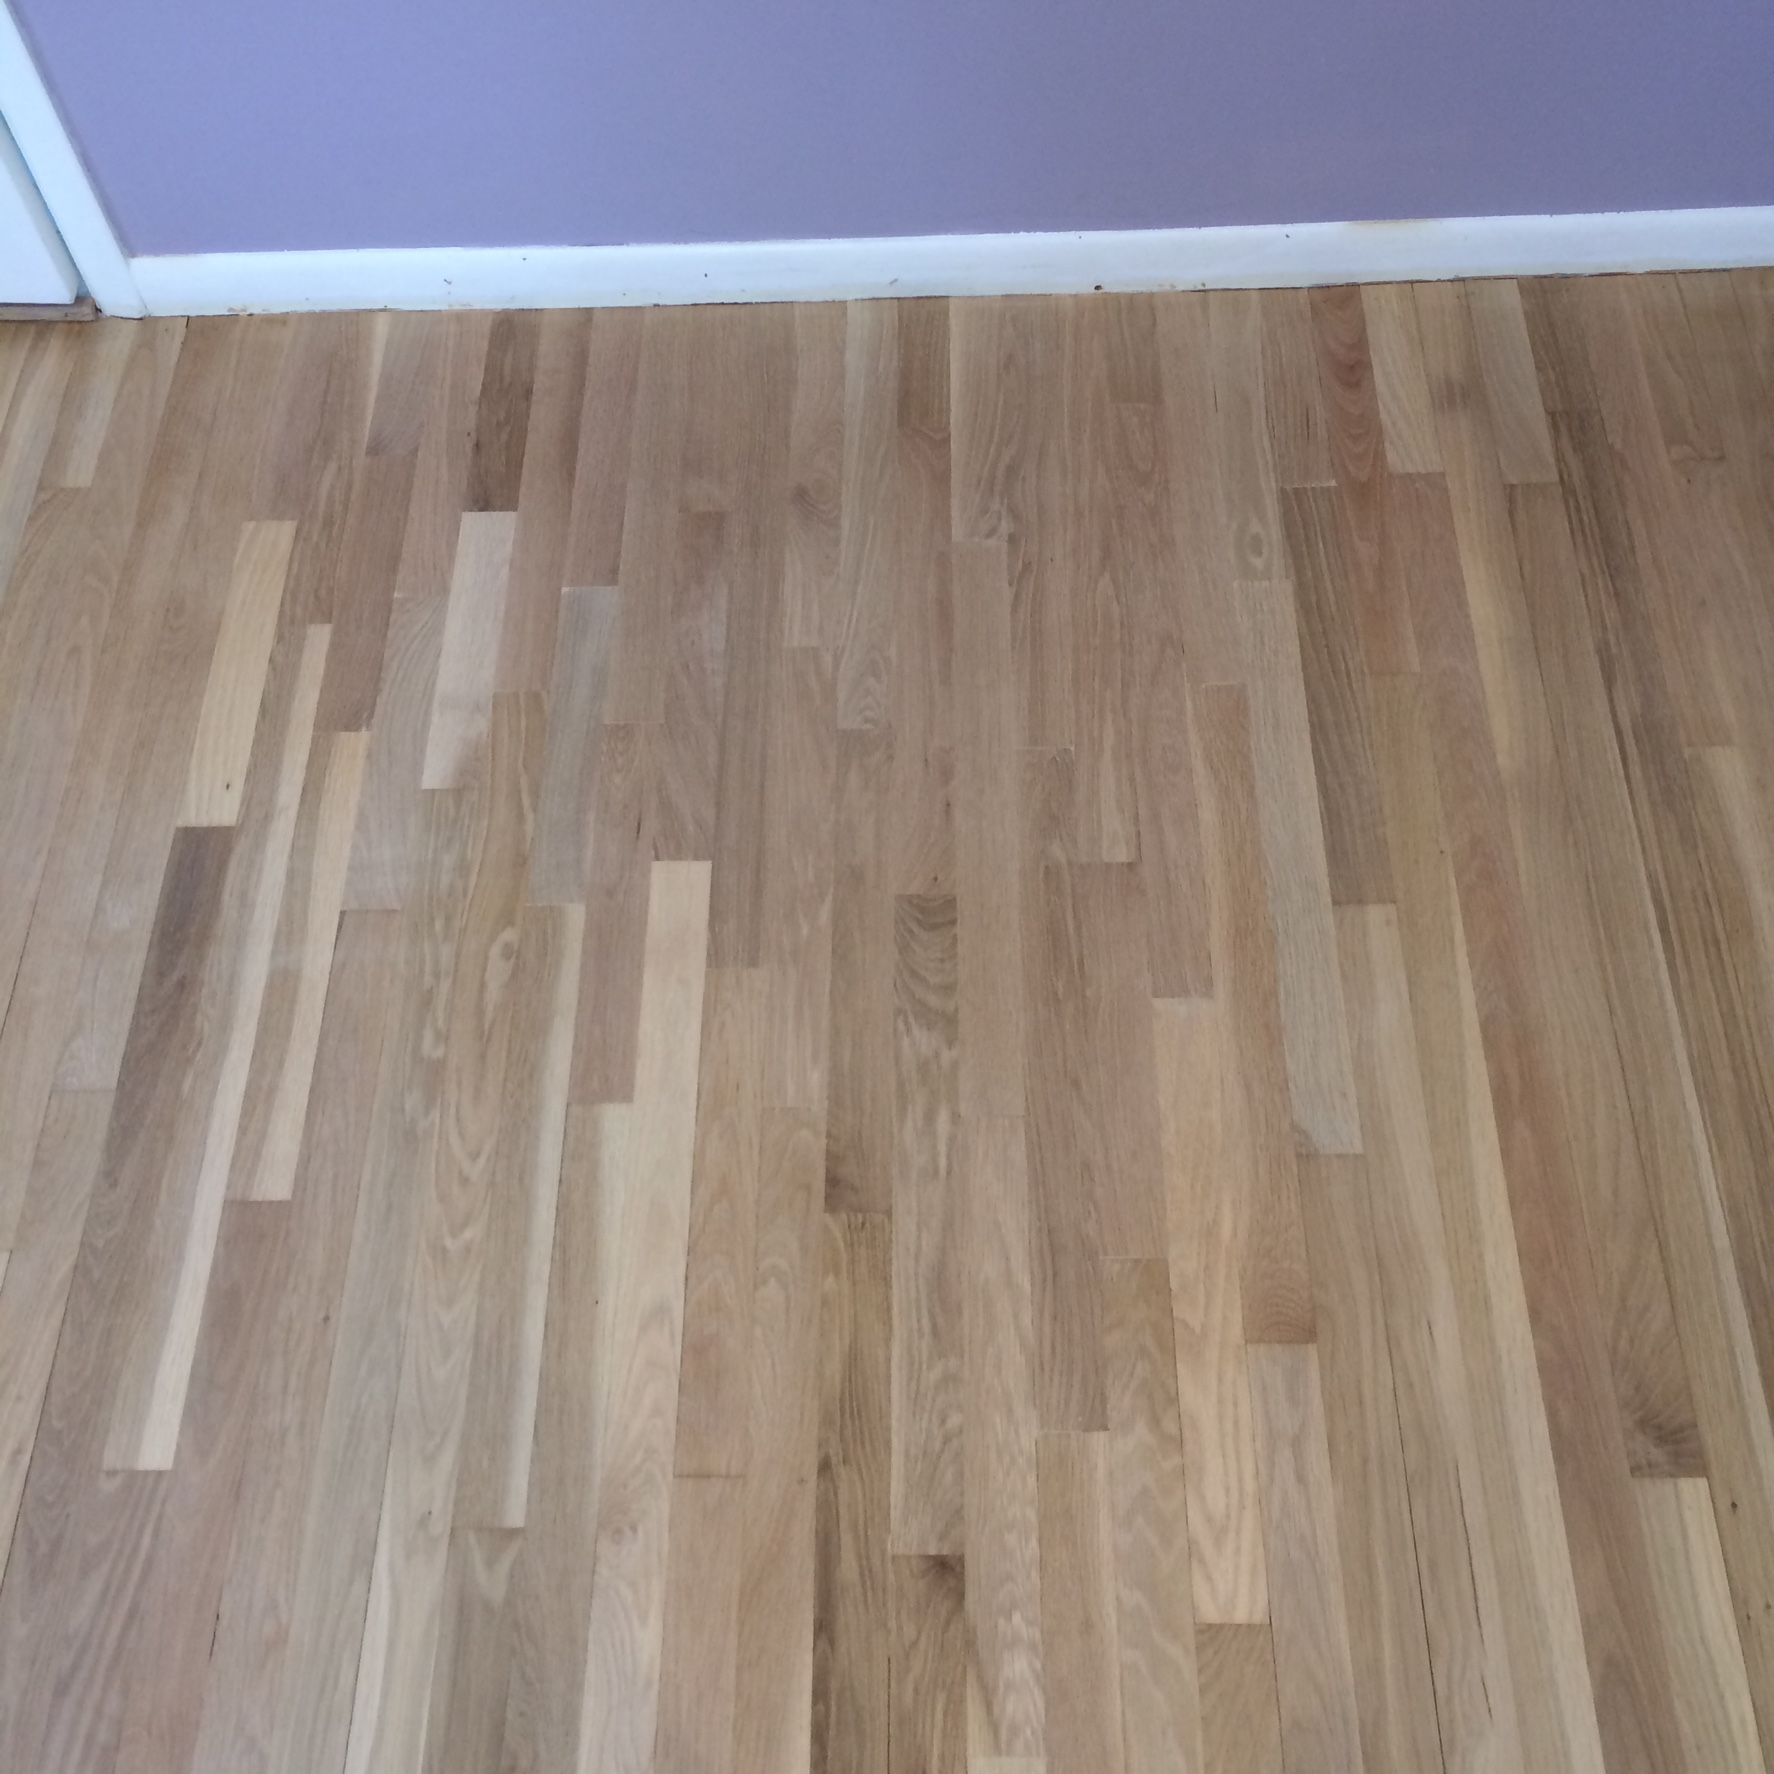 Frank h duffy inc duffyfloors for Where to get hardwood floors